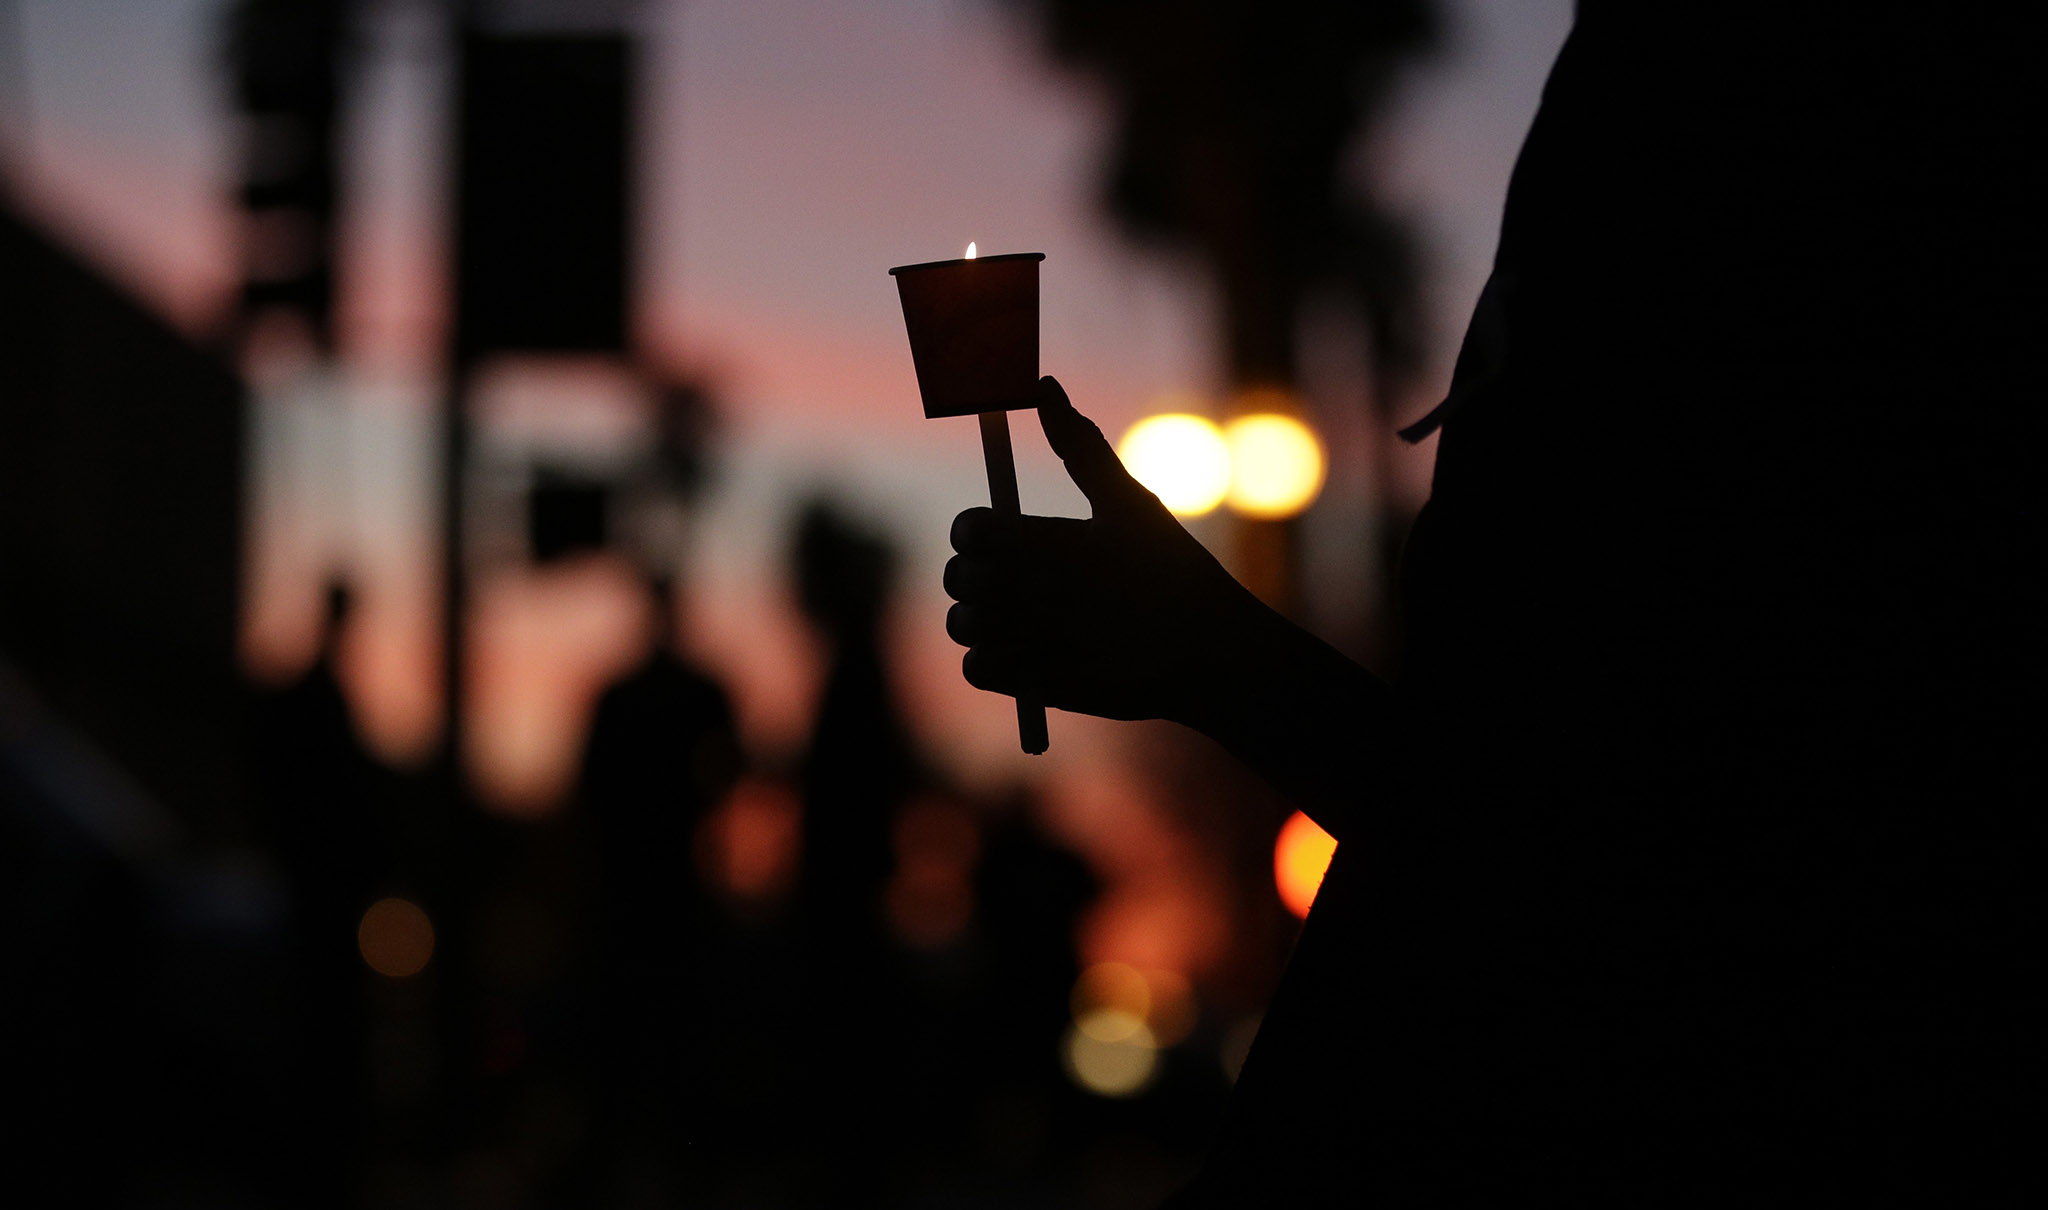 Cathleen Garcia holds a candle during a vigil to honour shooting victims in San Bernardino, California